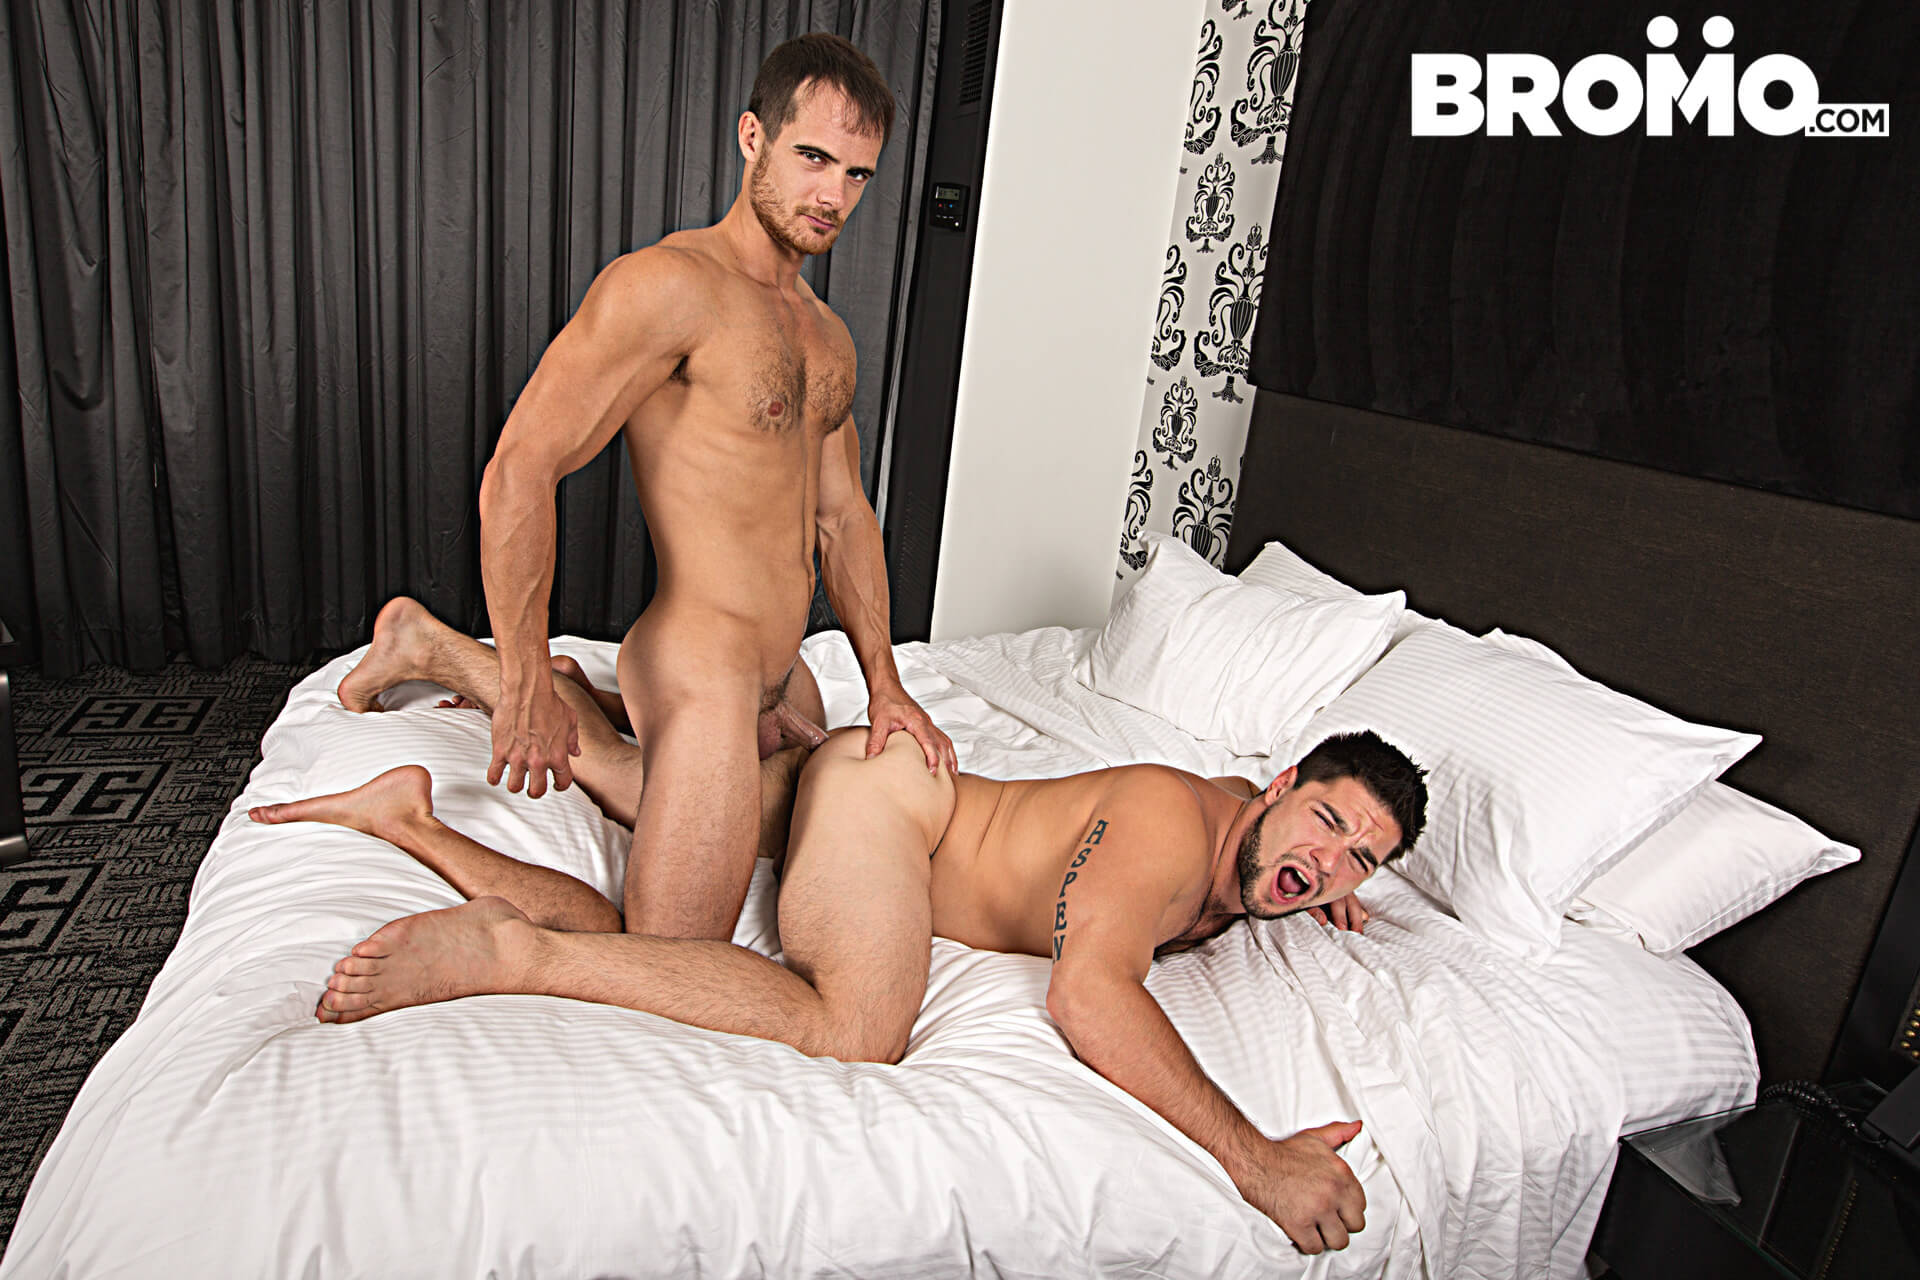 BROMO.COM » Str8 Bitch Part 1 » Aspen » Evan Marco